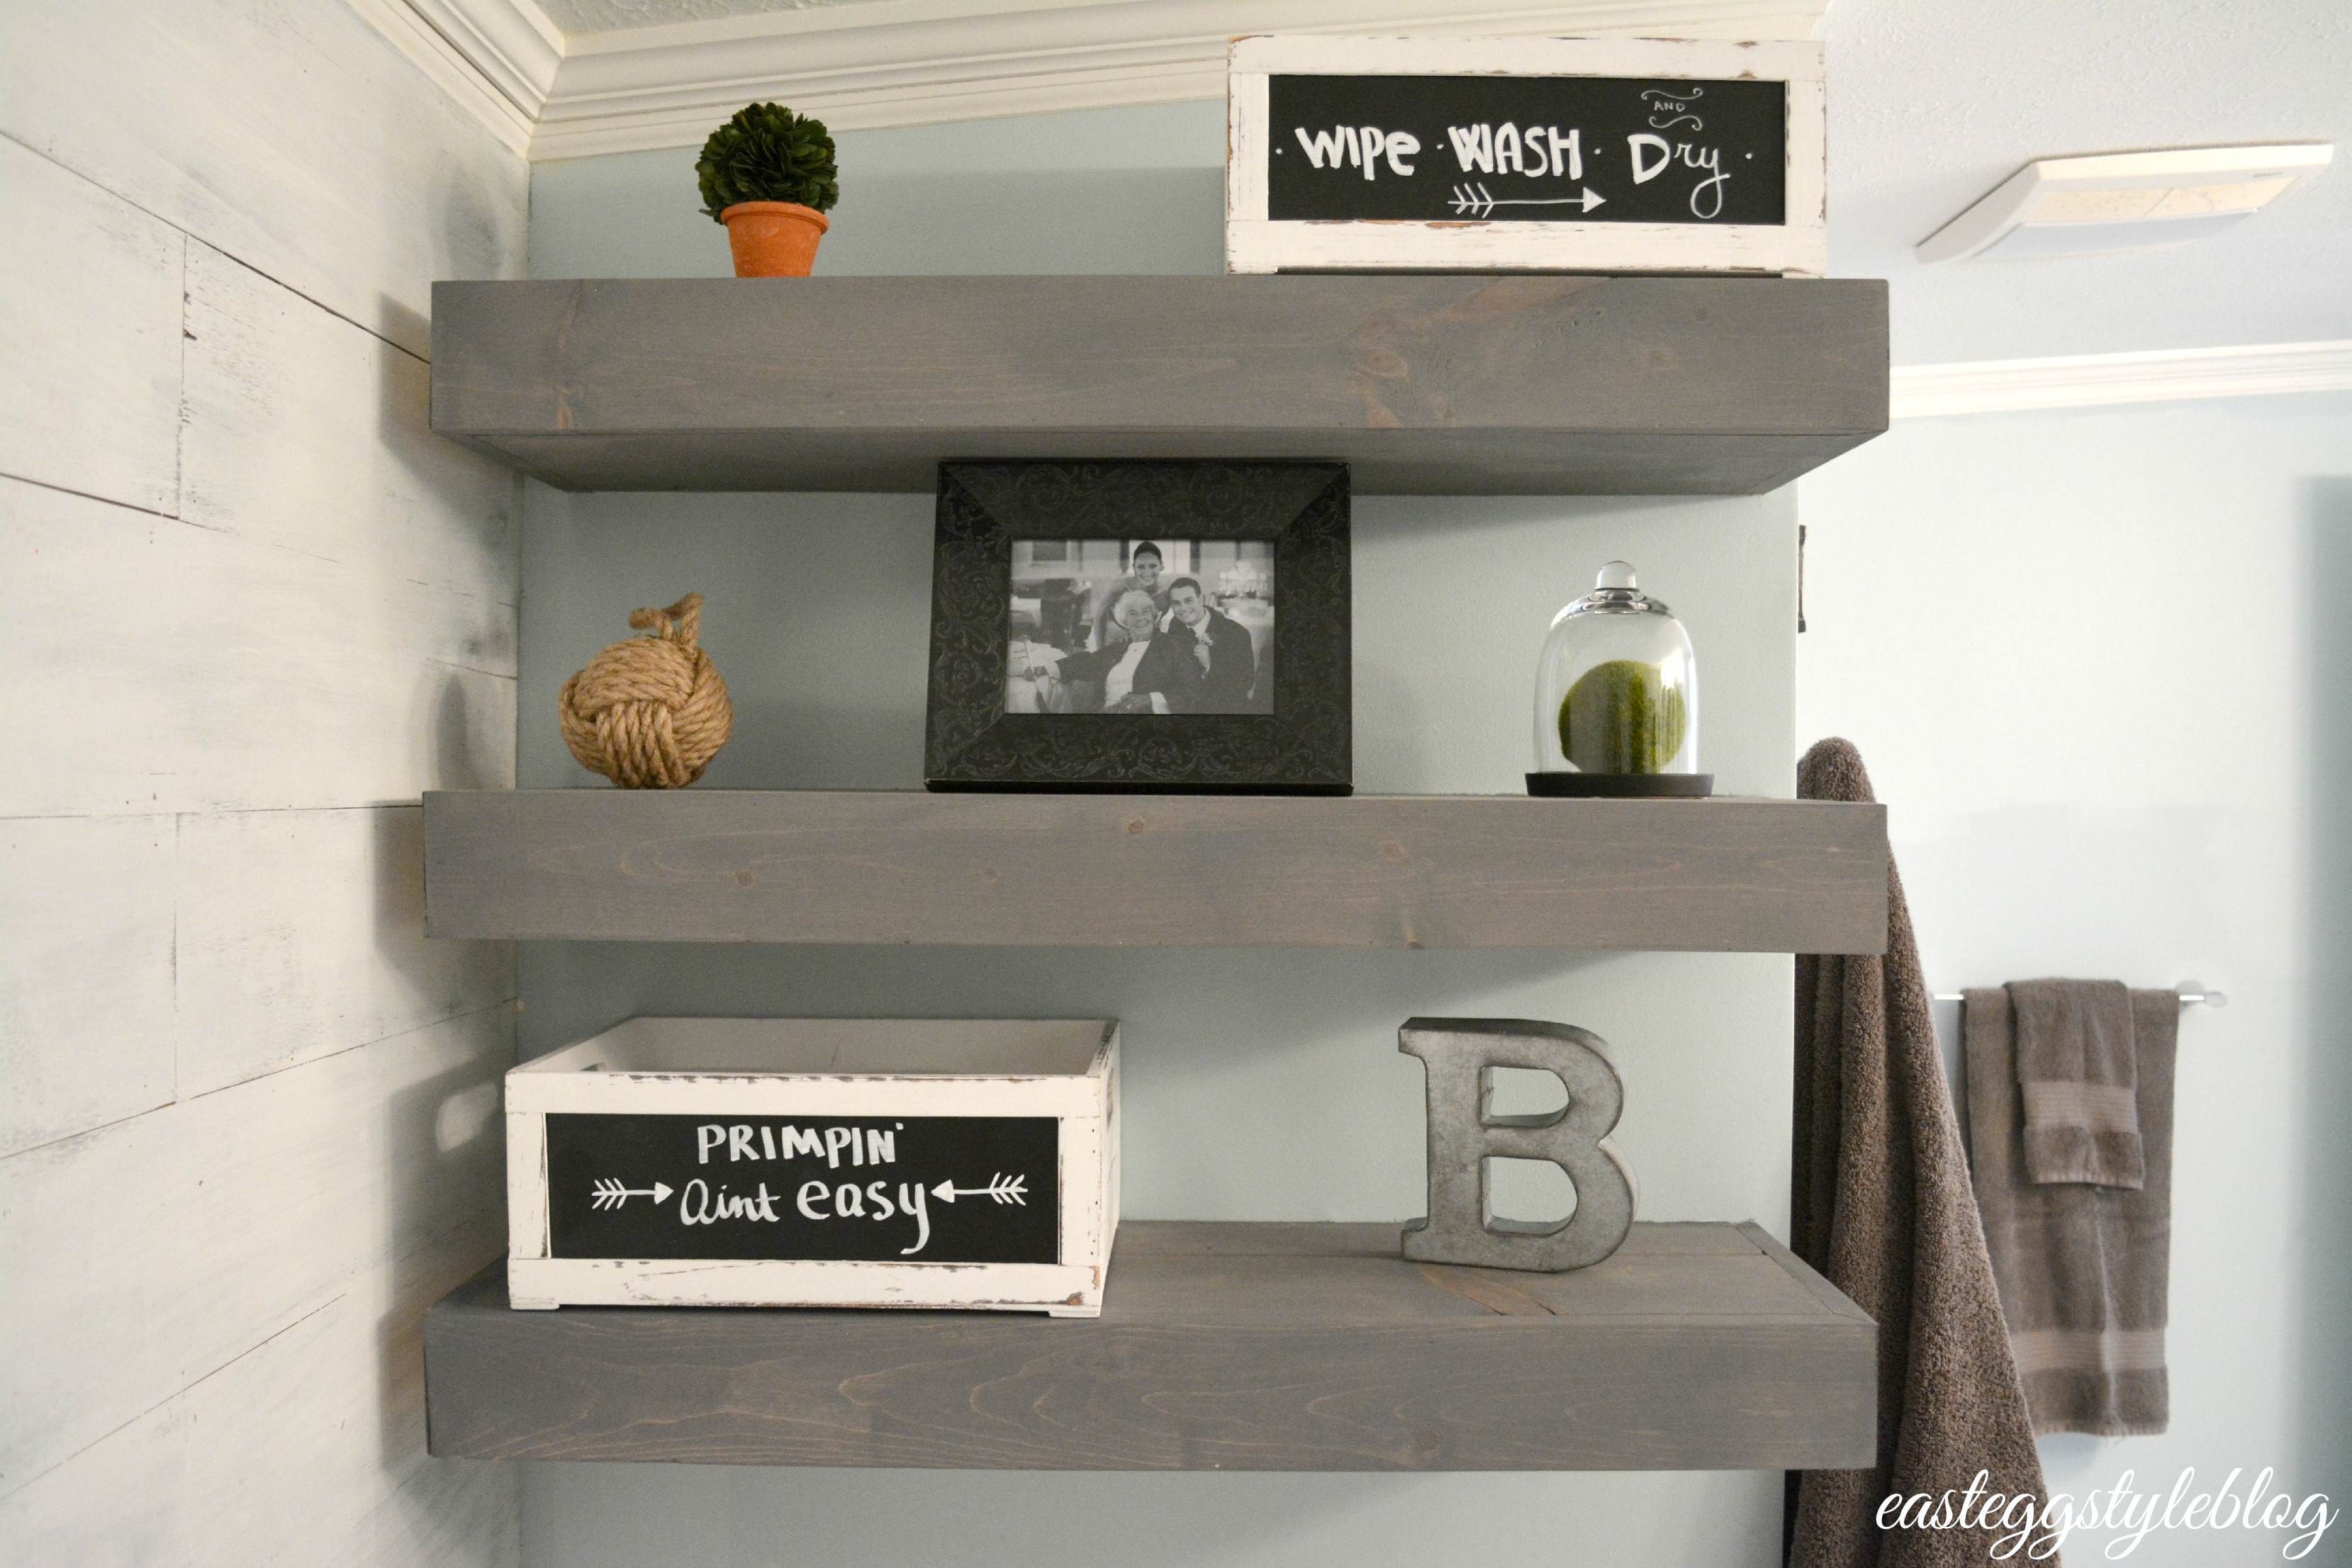 diy floating shelves grey wash rod iron wall coat rack mounted garage storage home office cabinet design black glass bathroom shelf study desk with bookshelf pine wood and